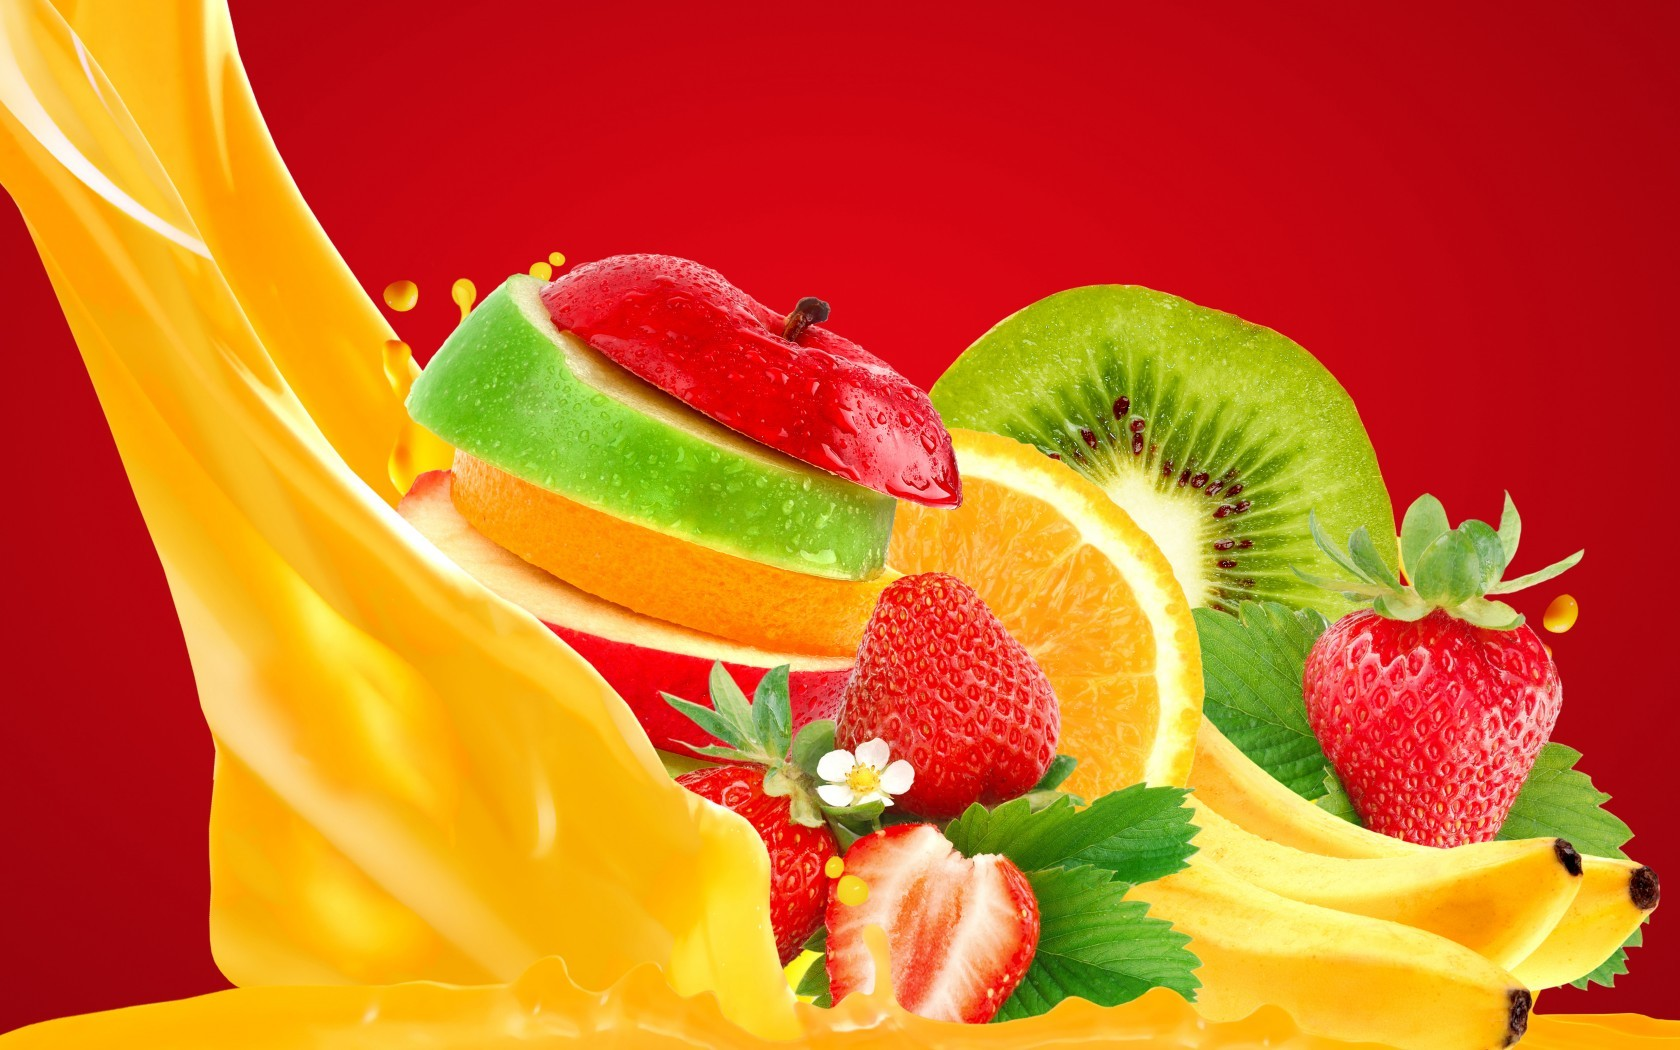 Wallpaper Apple Banana Strawberry Orange Juice Food 812